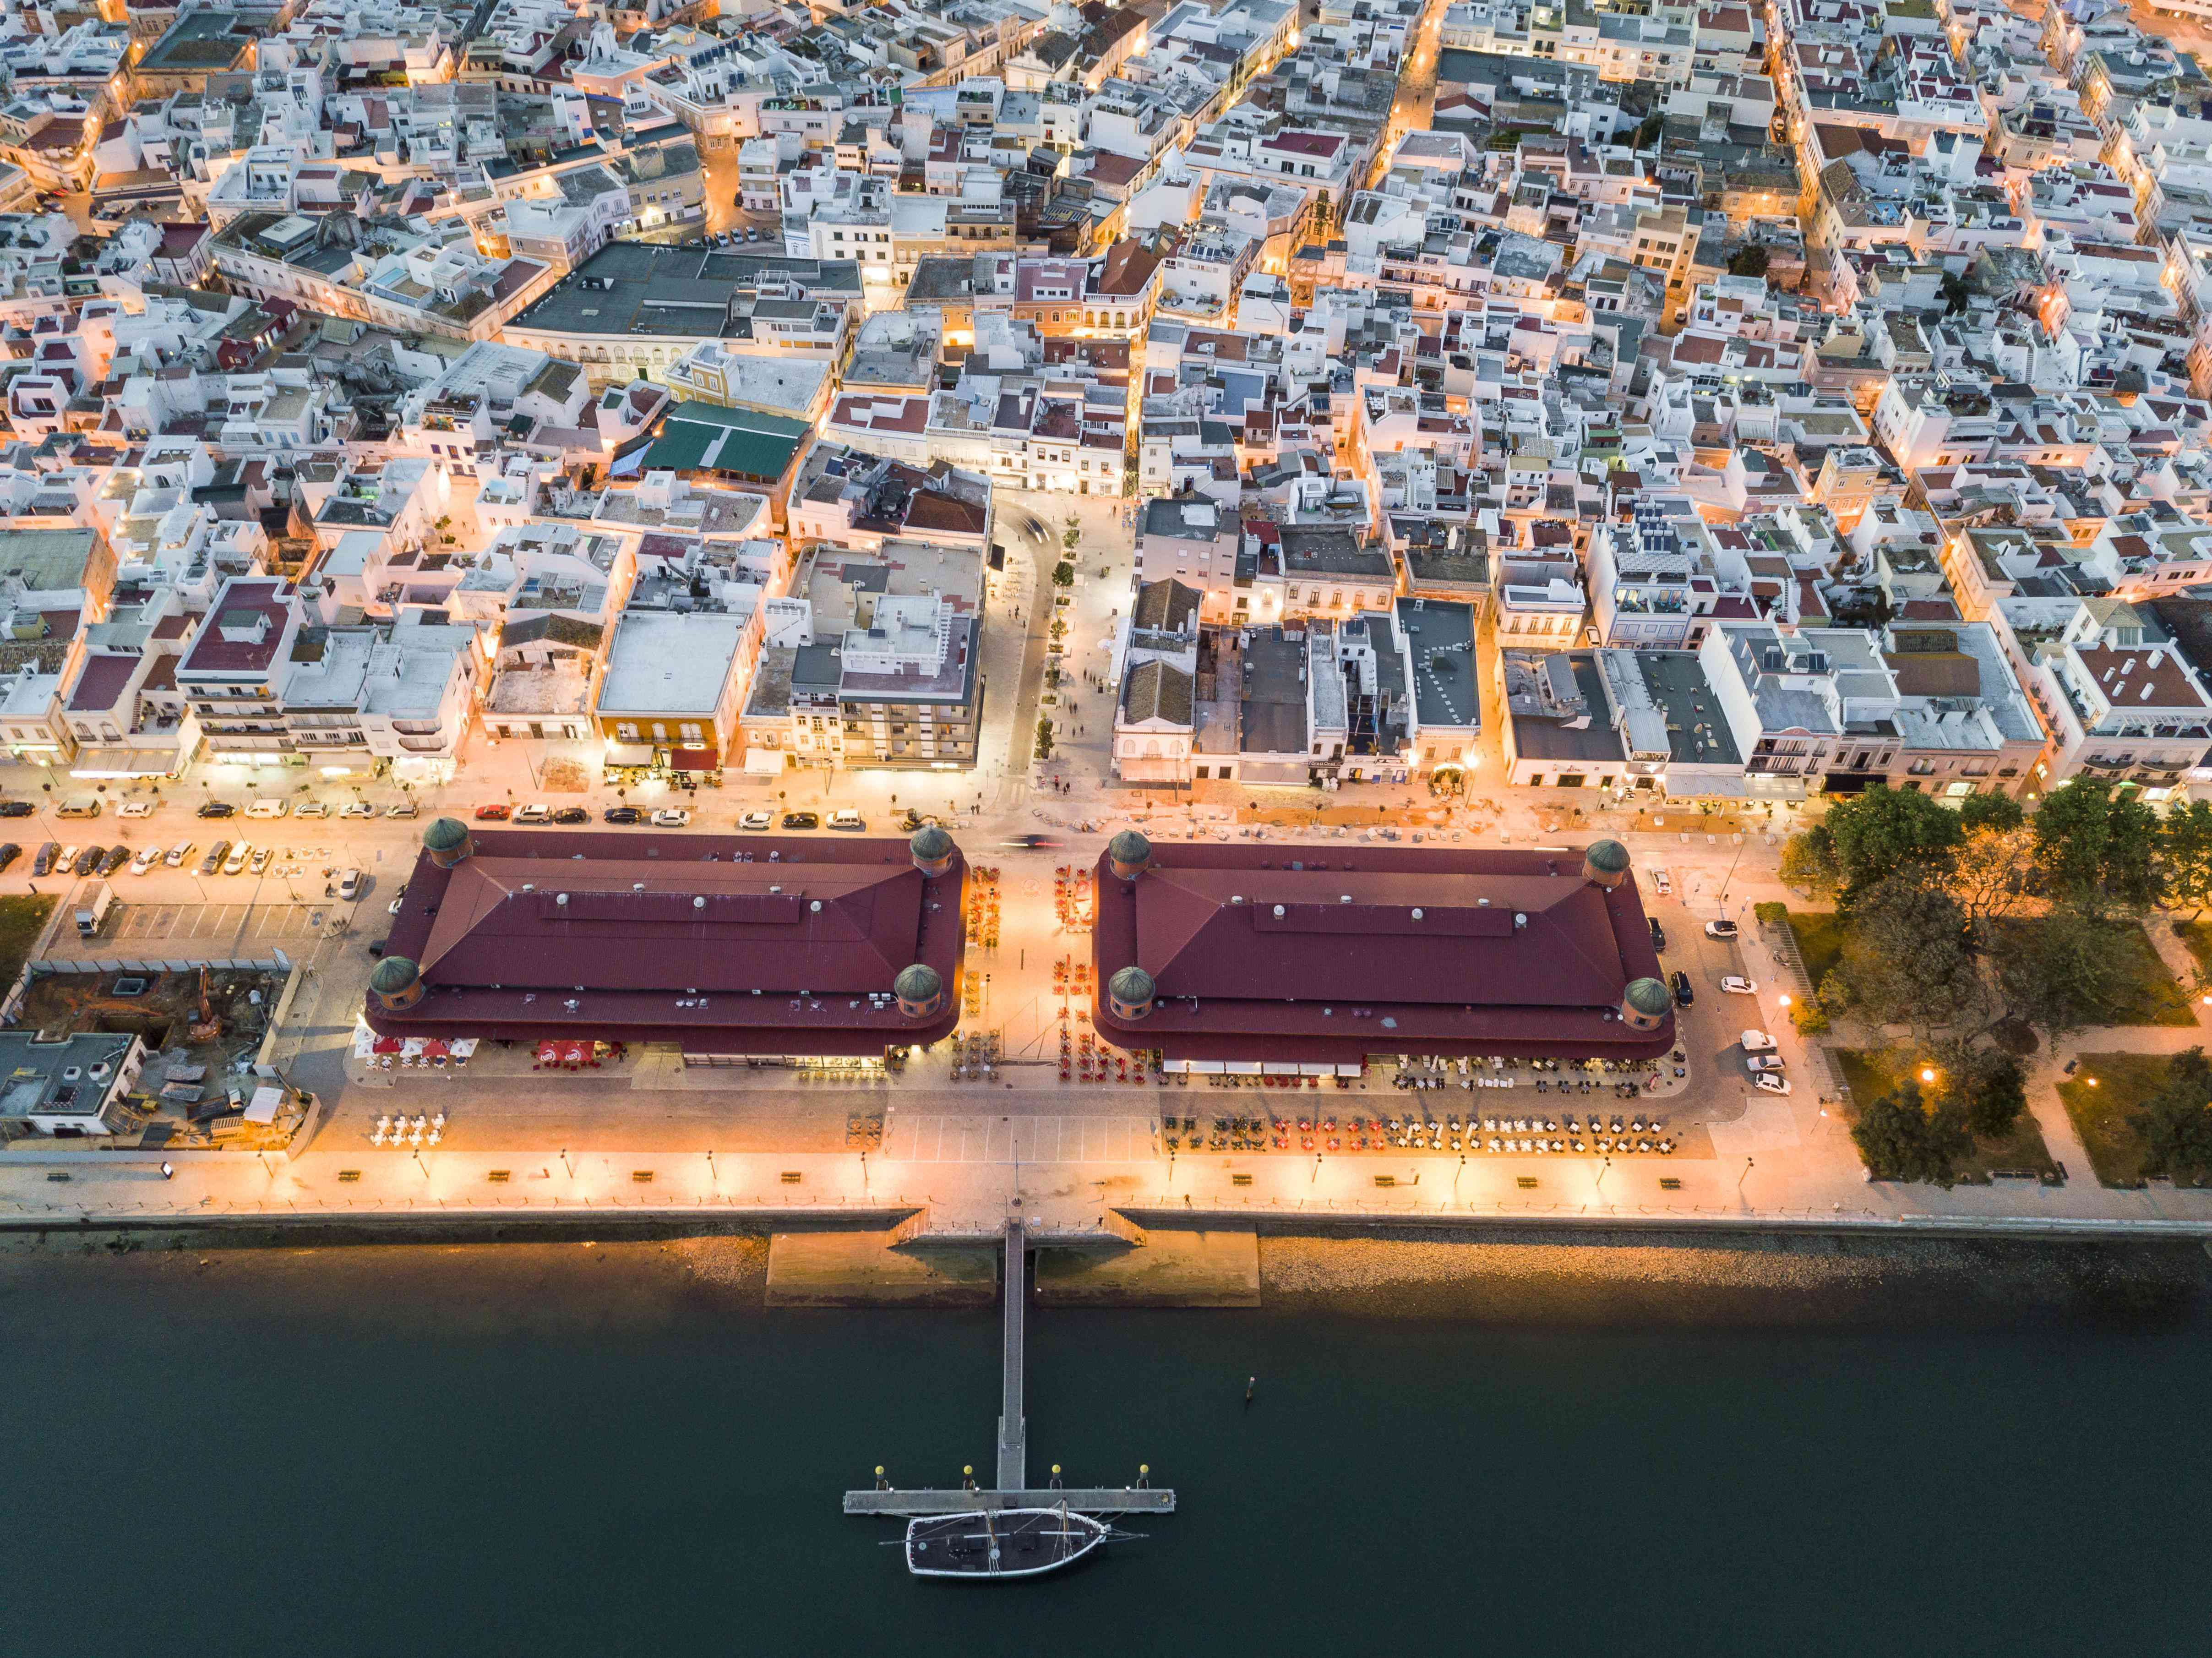 City view with two market buildings in the evening, river Ria Formosa, Olhao, Algarve, Portugal